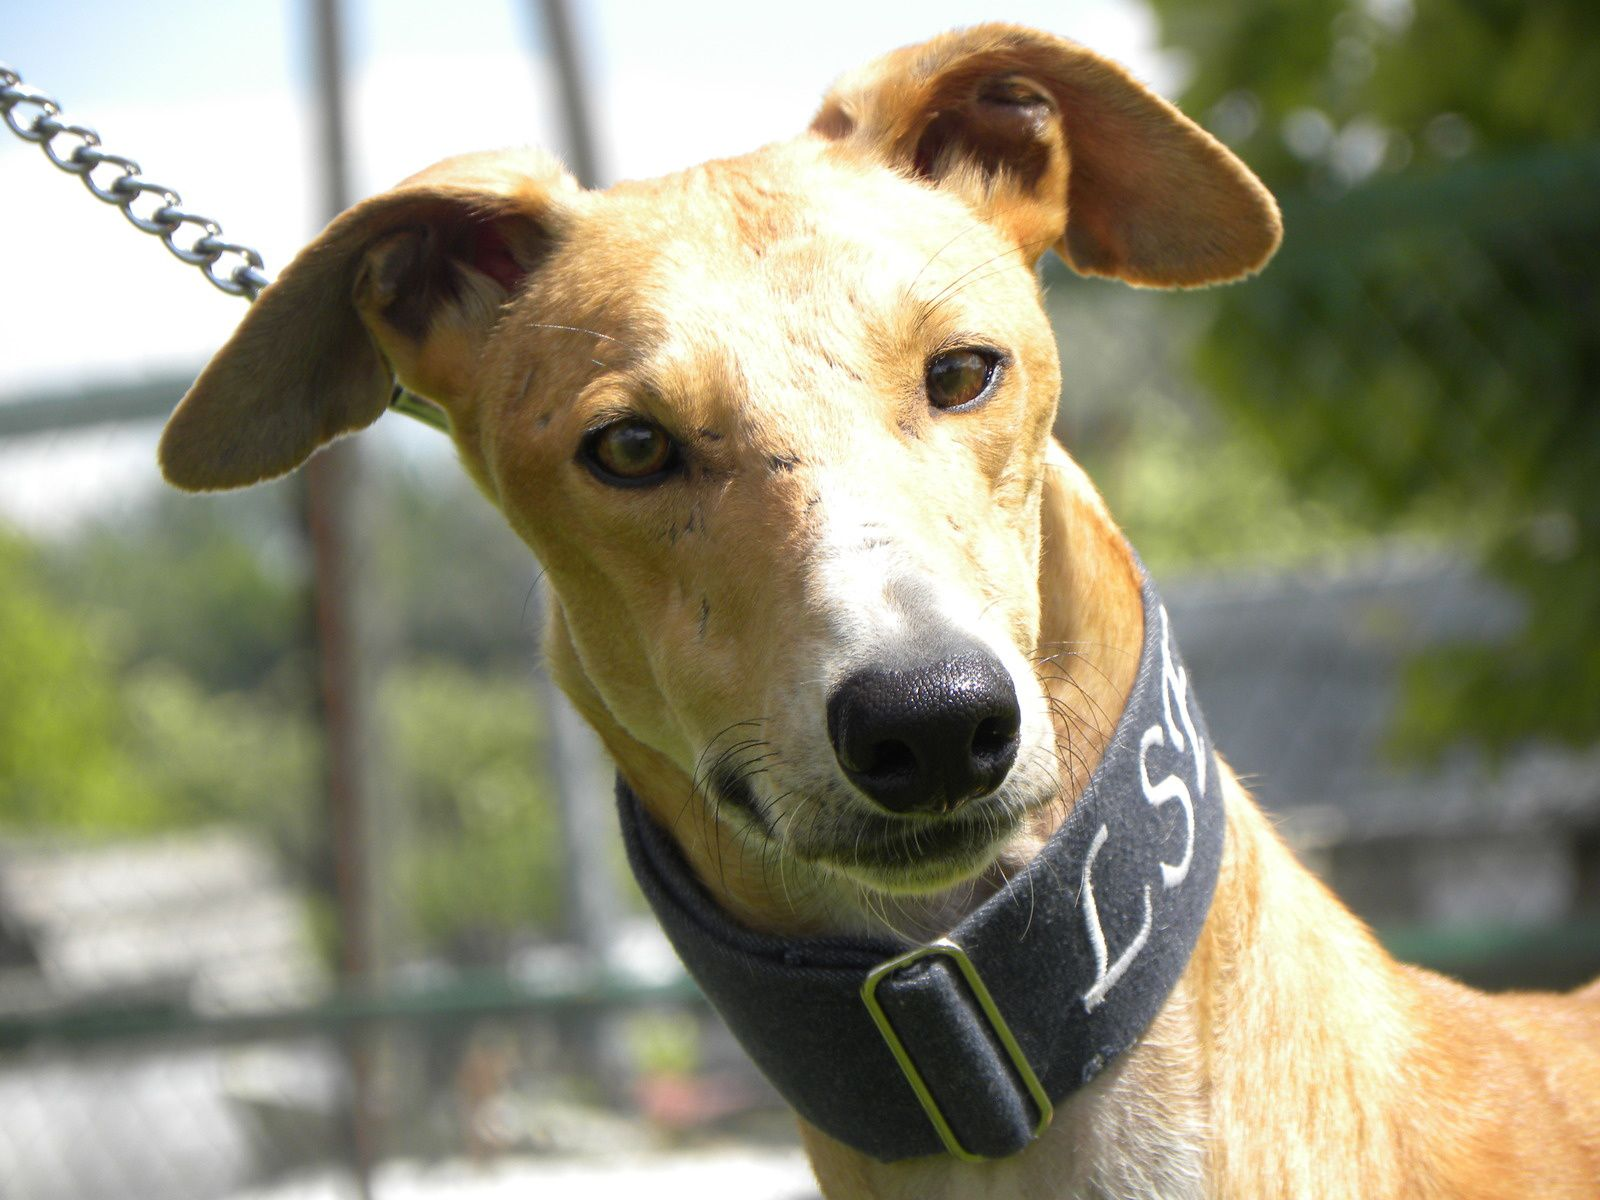 GALGOS LSF A ADOPTER DANS LE SUD/JUIN 2014